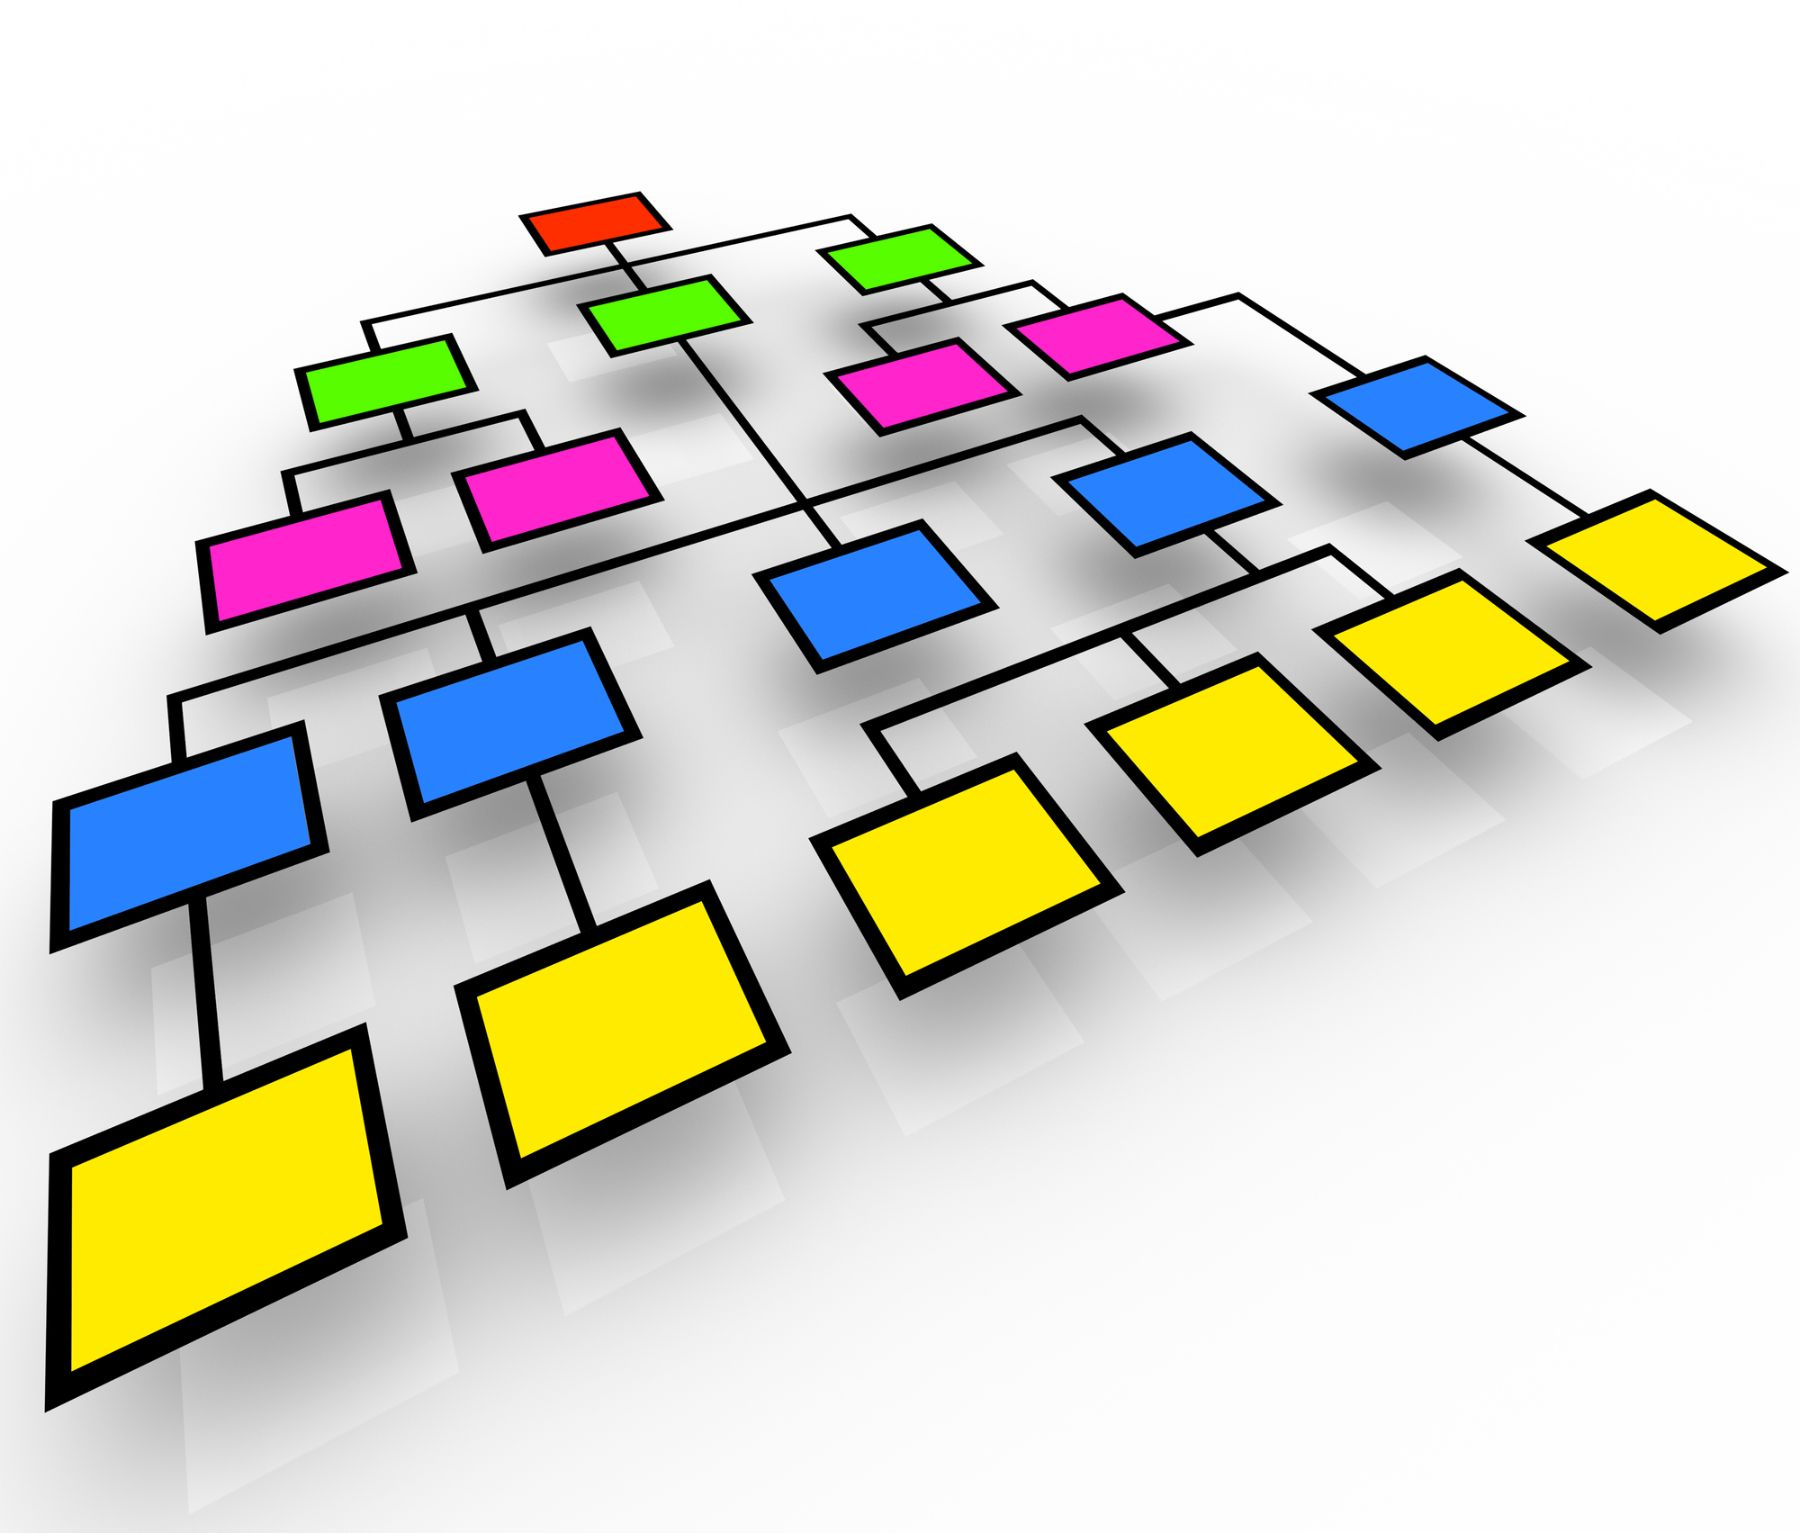 Organization chart with colored boxes